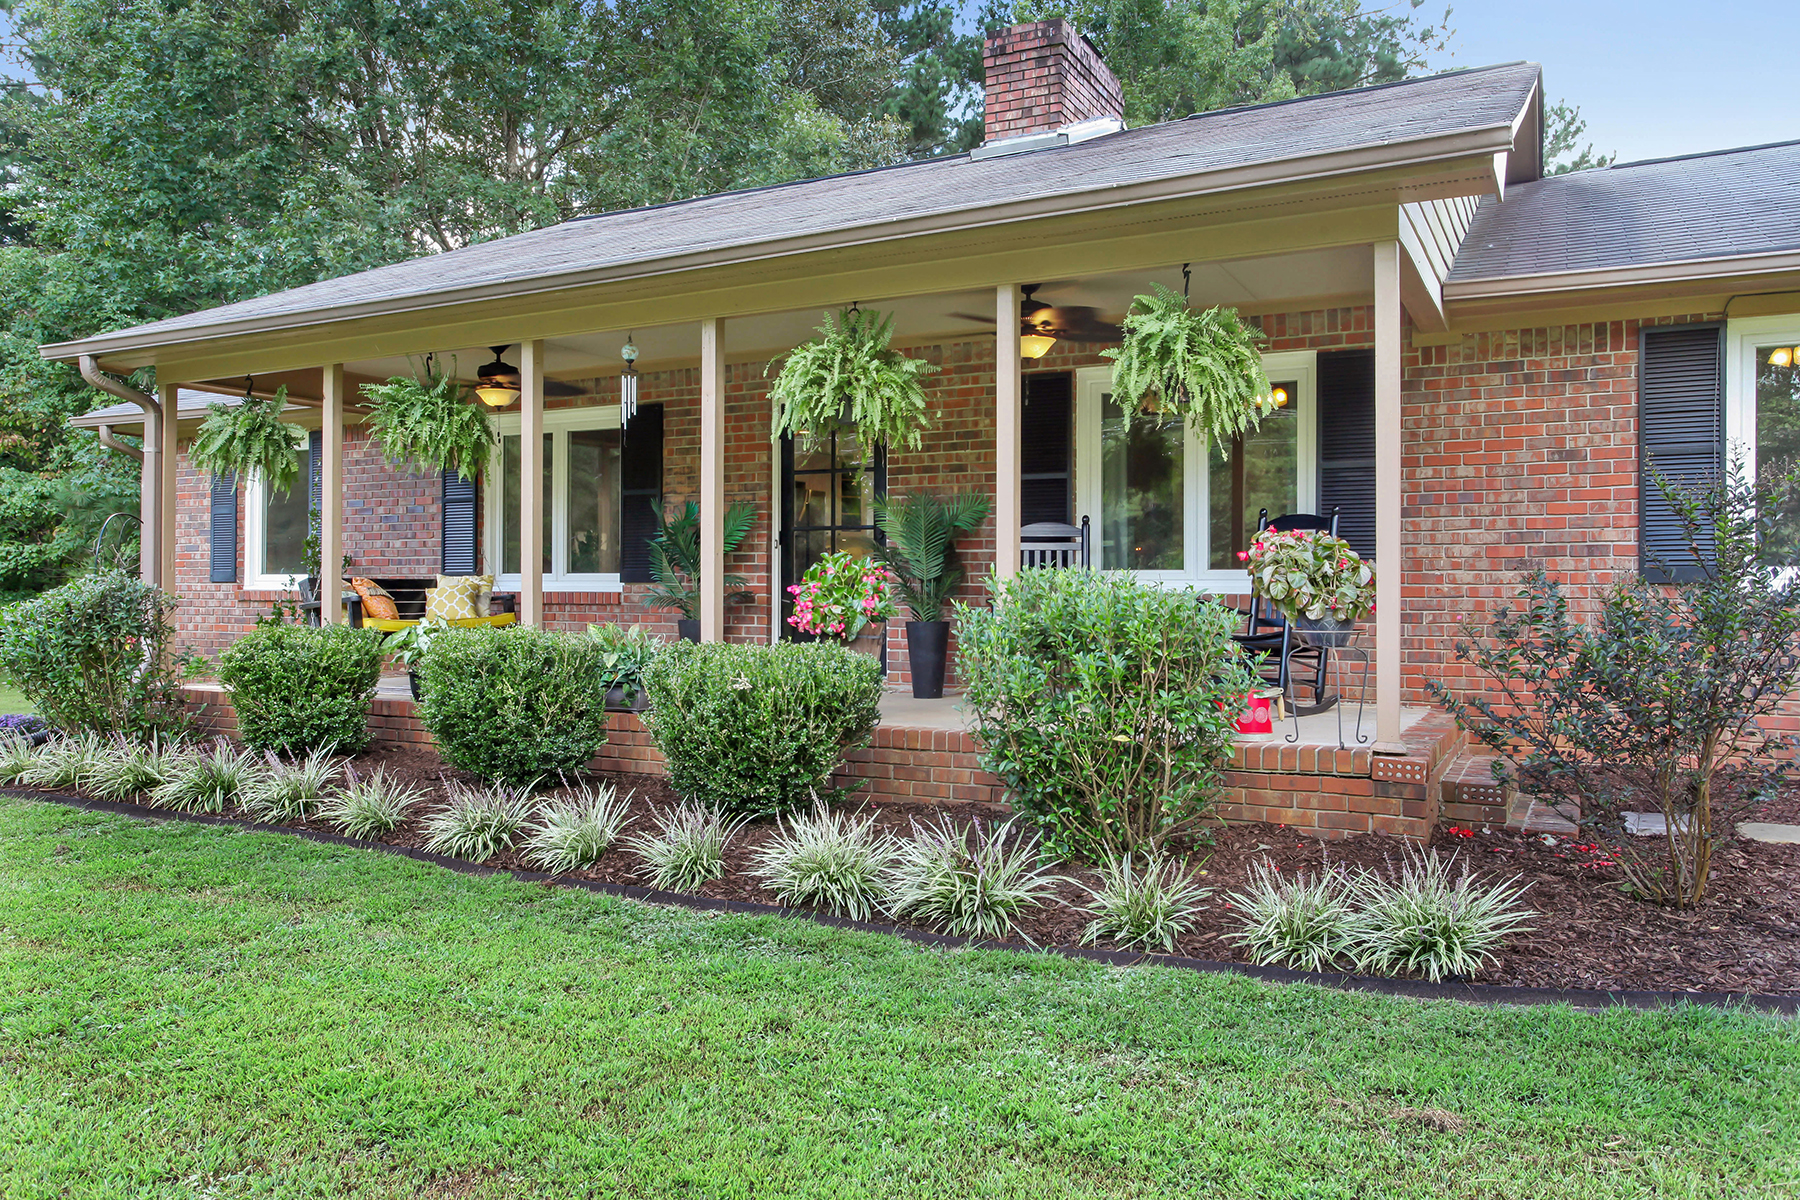 Single Family Home for Sale at Adorable Fully Renovated Country Chic Ranch 3201 Cheatham Rd Acworth, Georgia 30101 United States